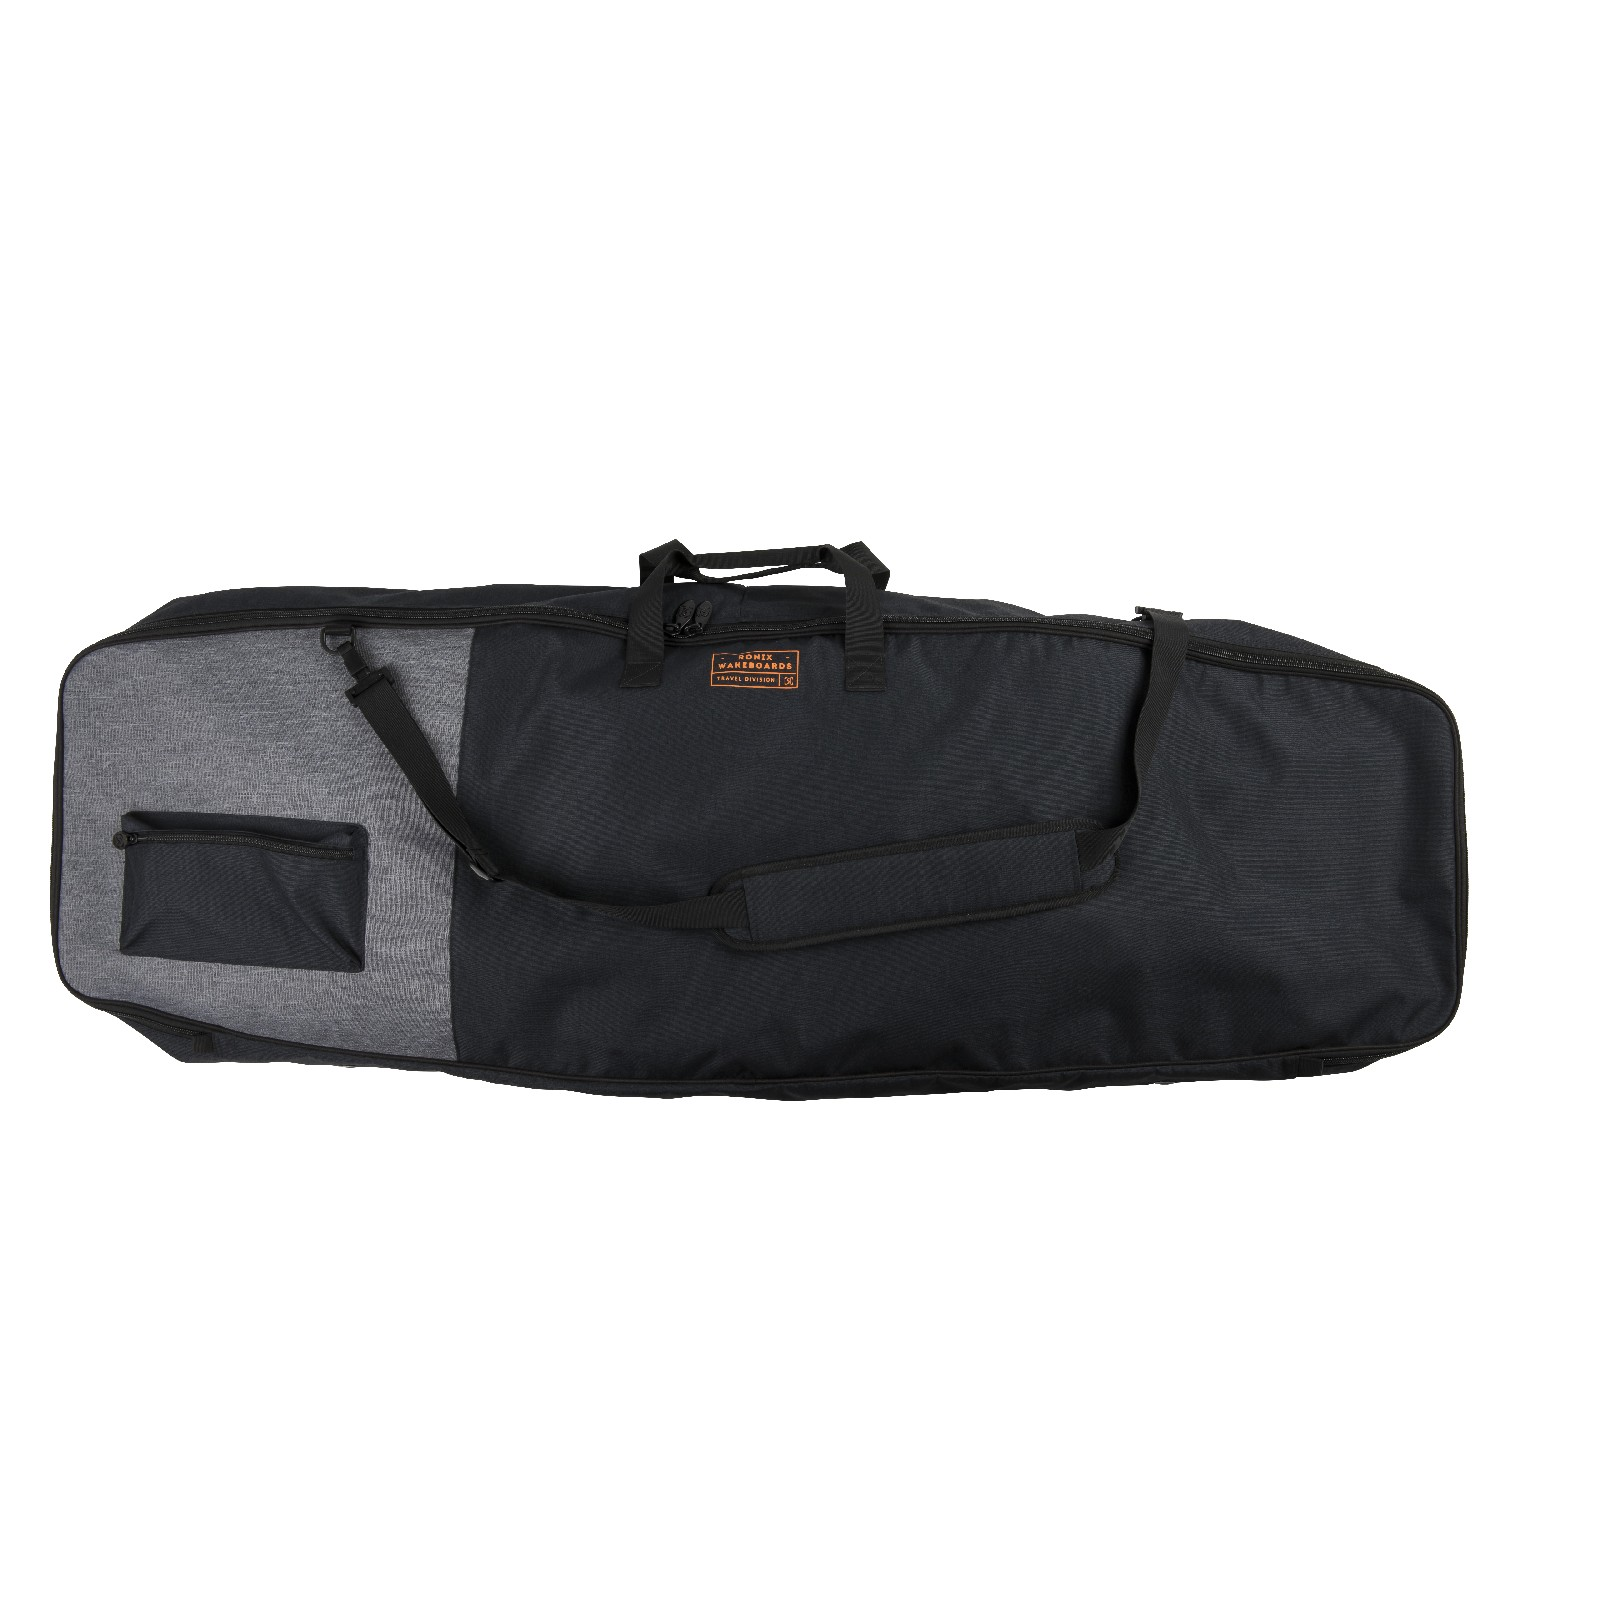 COLLATERAL NON PADDED BOARDBAG RONIX 2019